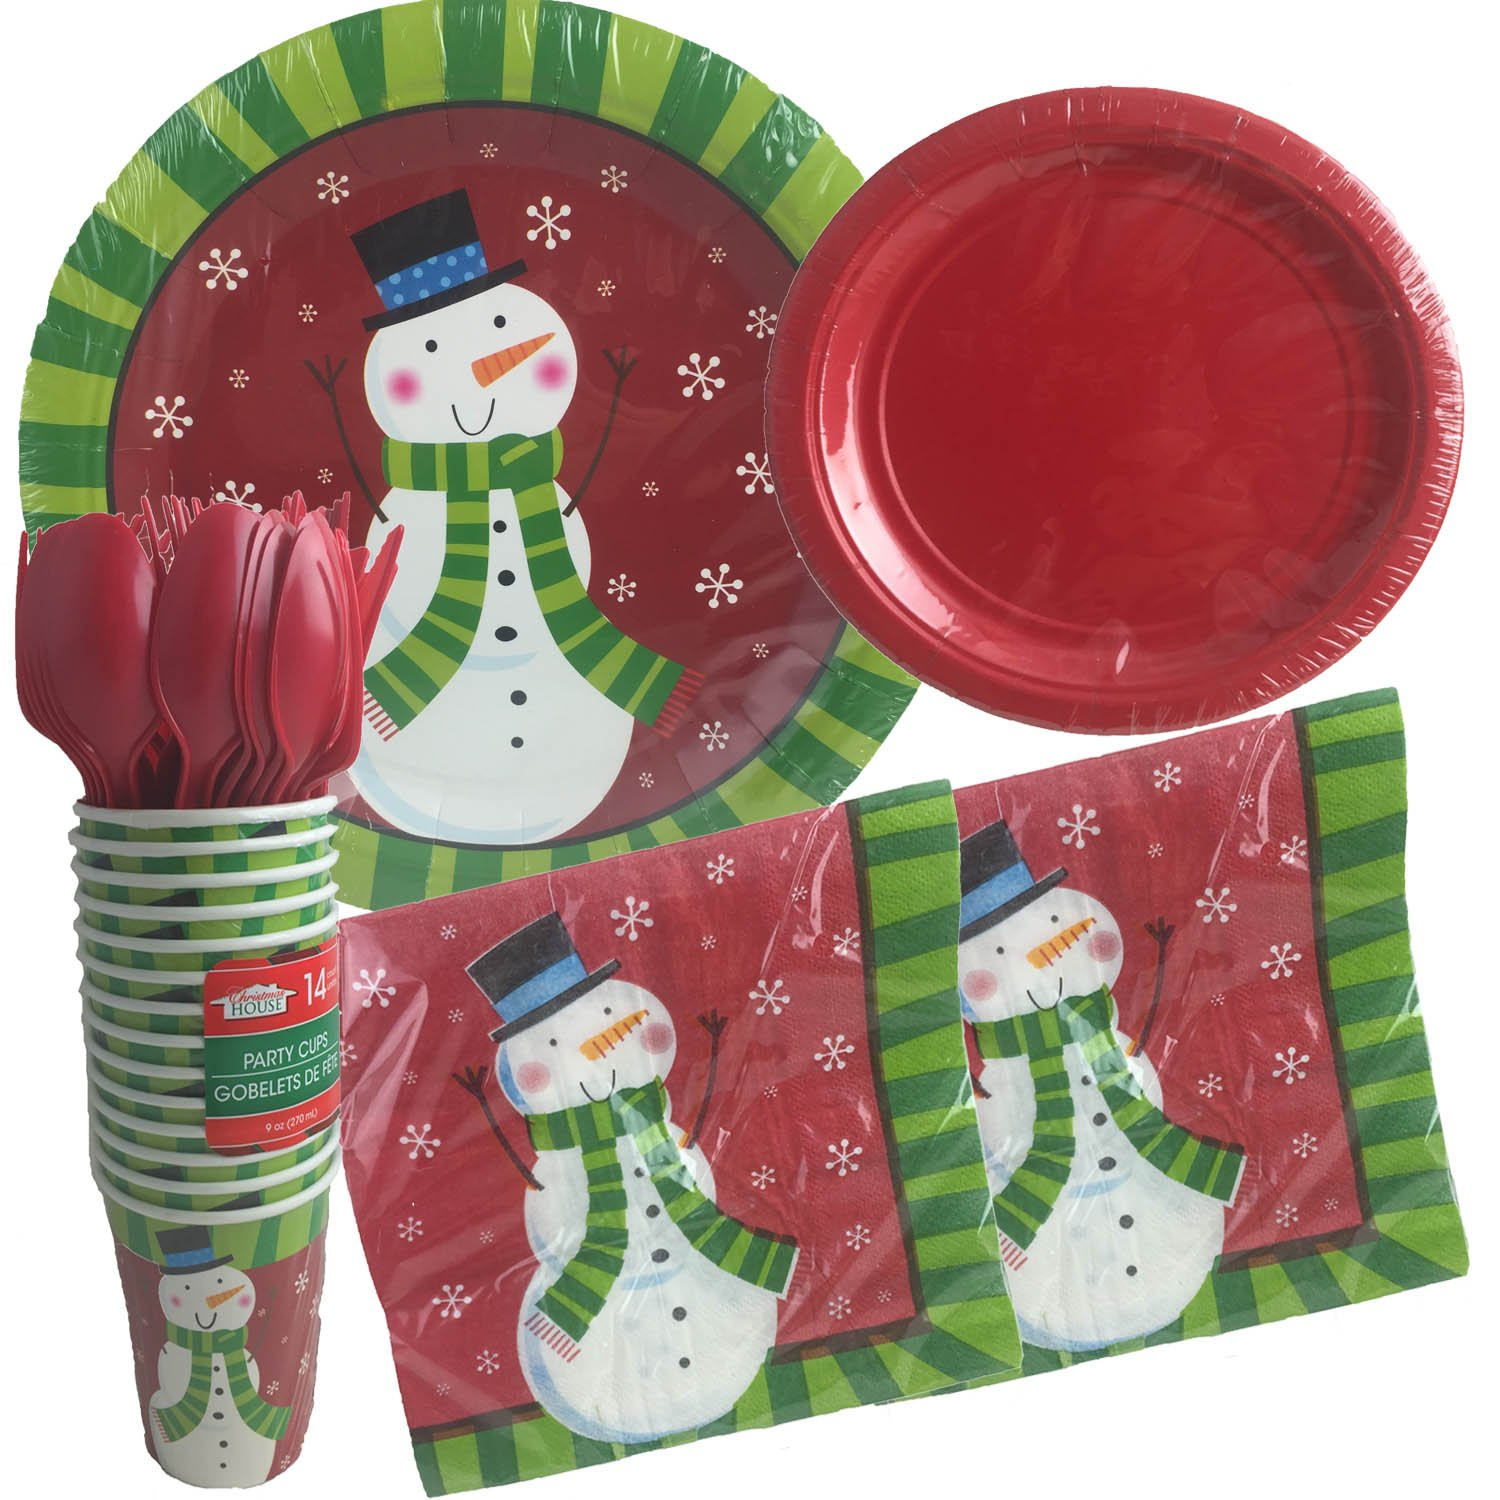 Amazon.com Christmas Snowman Disposable Dinnerware Set and Holiday Party Bundle - Snowman - 14 guests 144 pieces set of Dinner Plates Dessert Plates ...  sc 1 st  Amazon.com & Amazon.com: Christmas Snowman Disposable Dinnerware Set and Holiday ...